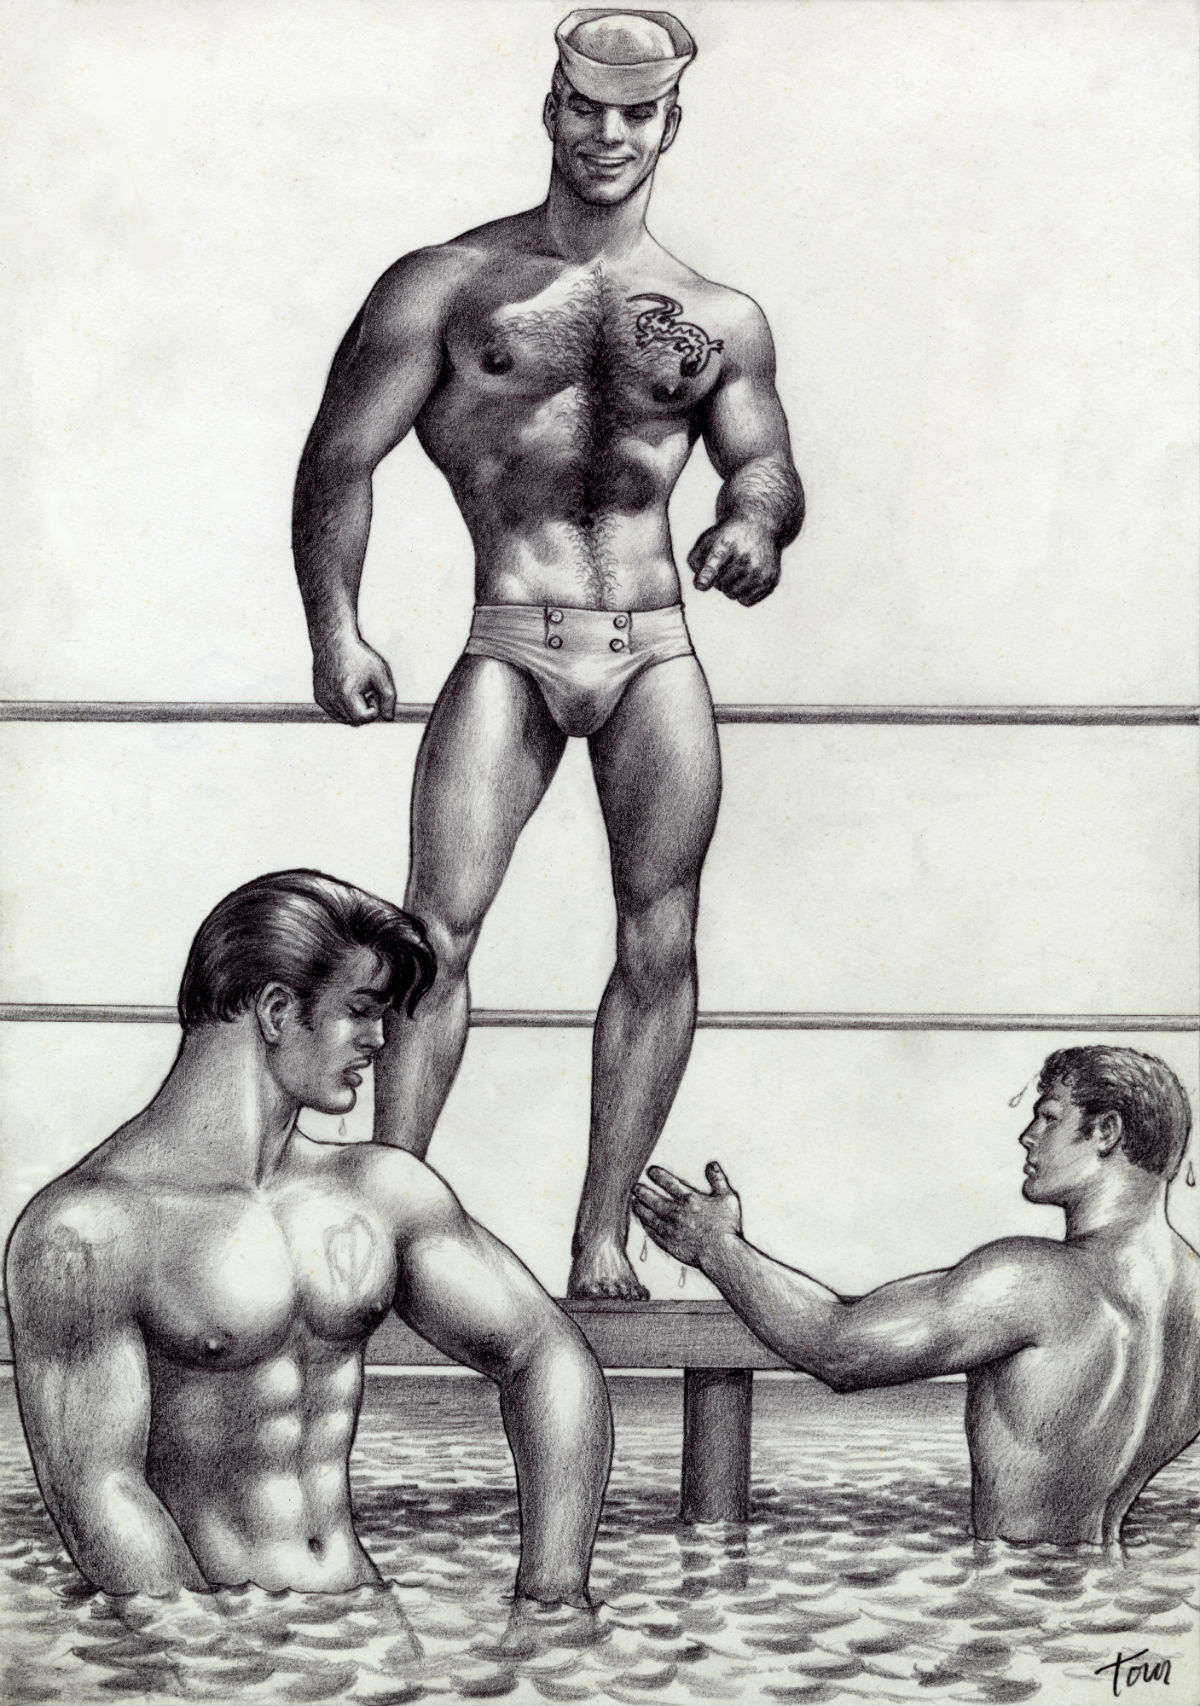 Tom of Finland swimmers